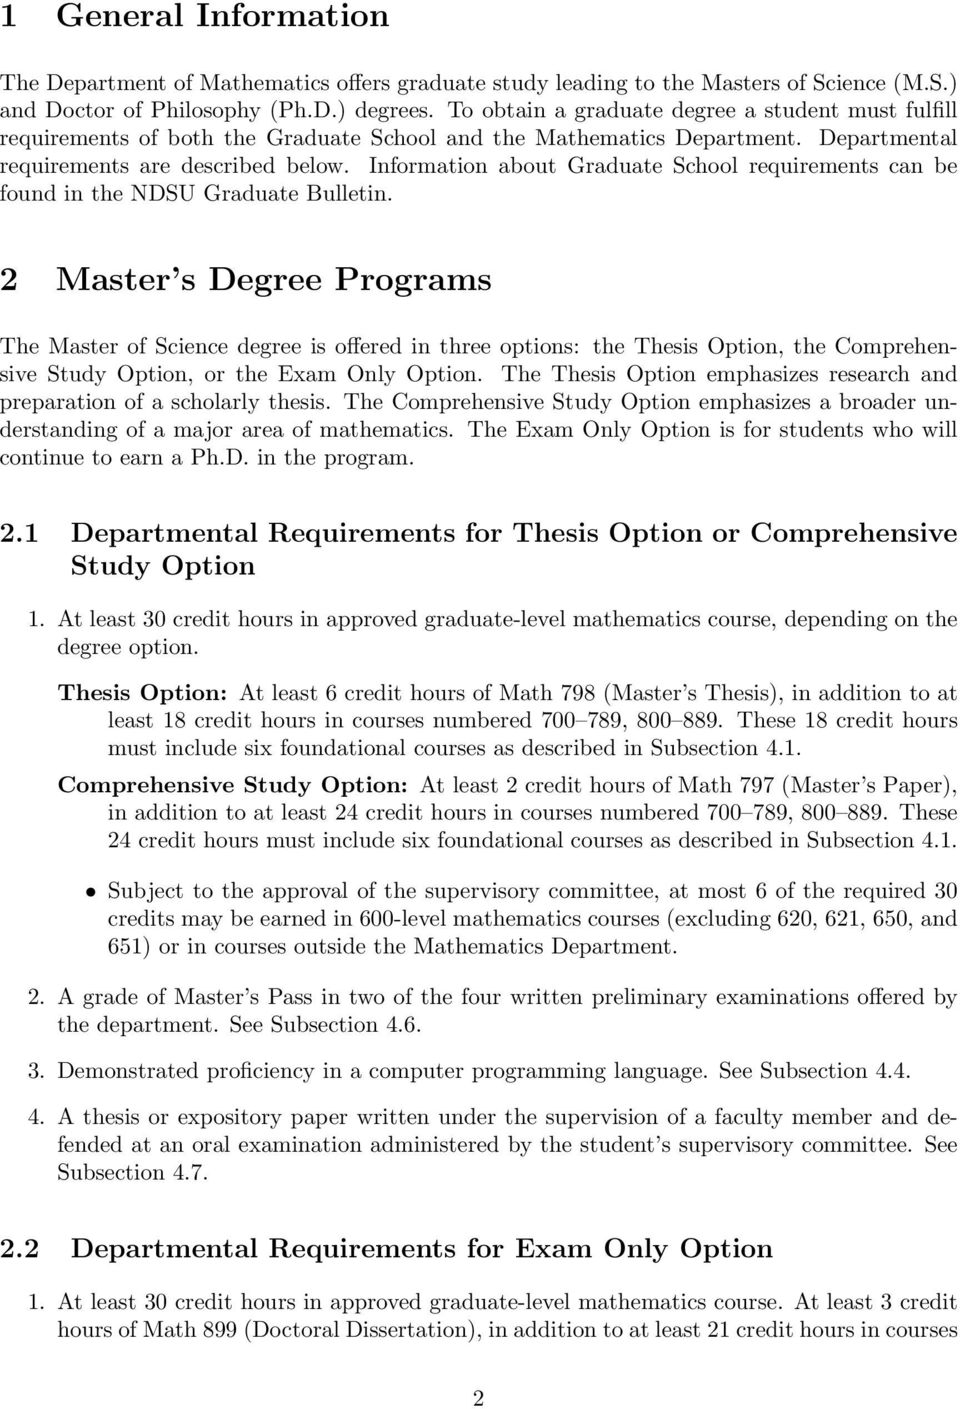 Information about Graduate School requirements can be found in the NDSU Graduate Bulletin.